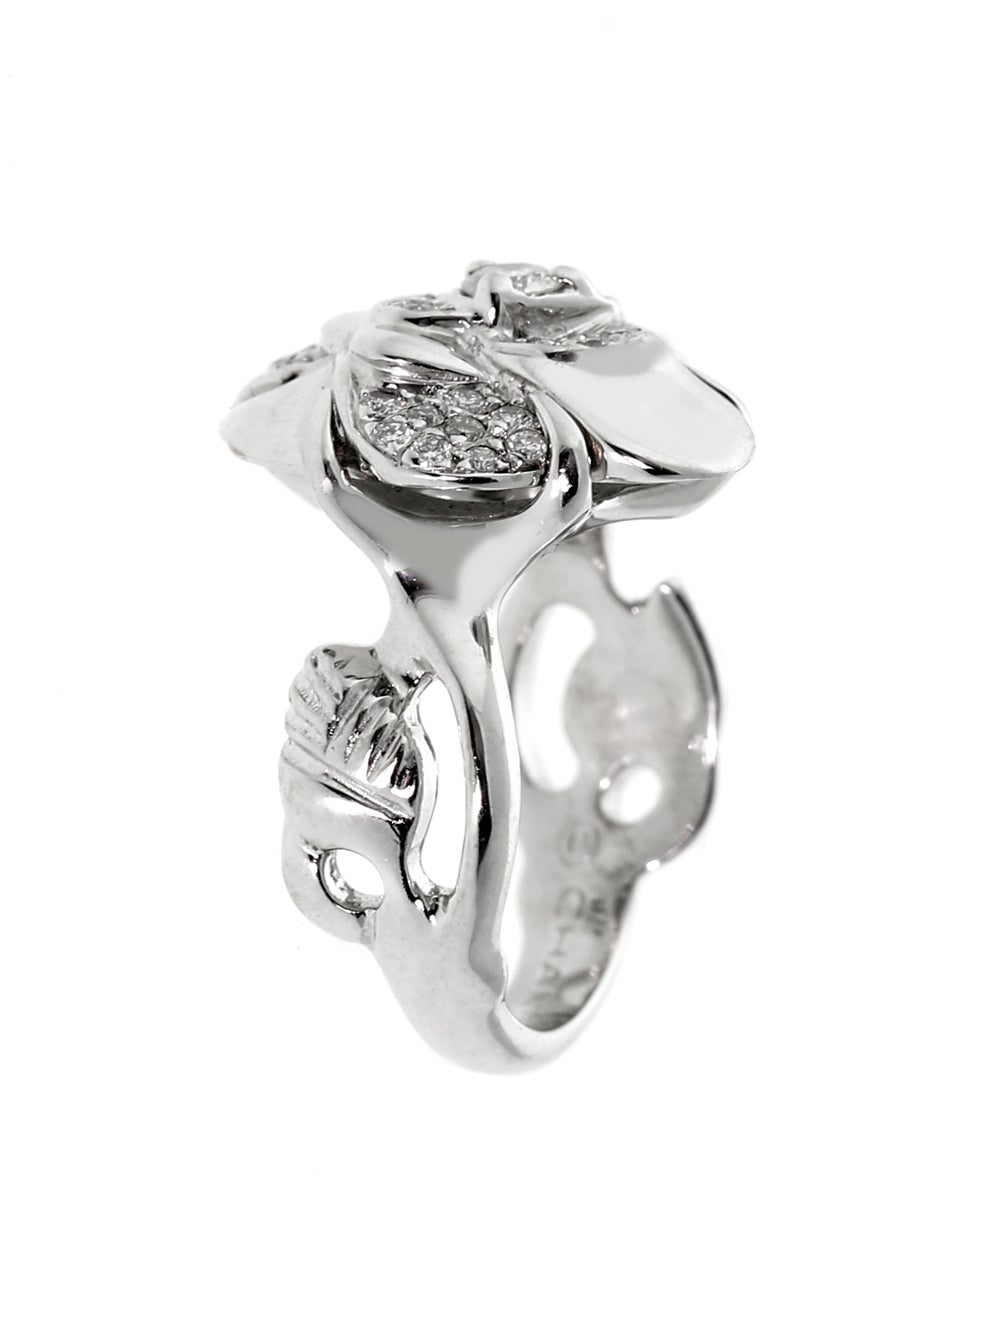 camellia profil ring profile gold de estate chanel white rings p diamond